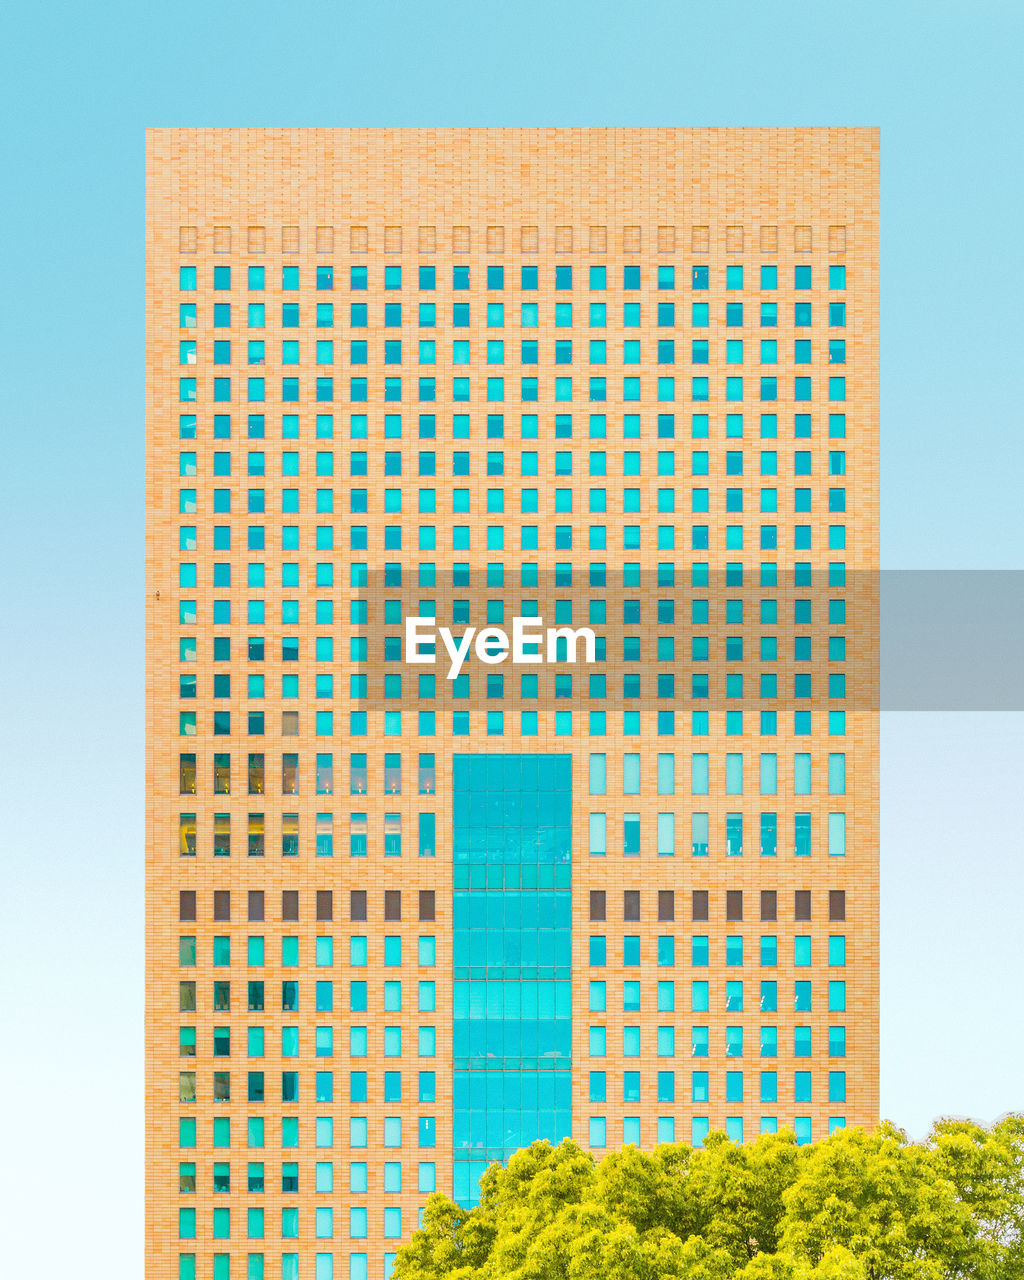 architecture, built structure, no people, building exterior, sky, plant, green color, nature, blue, day, pattern, tree, outdoors, building, window, office building exterior, clear sky, city, design, low angle view, skyscraper